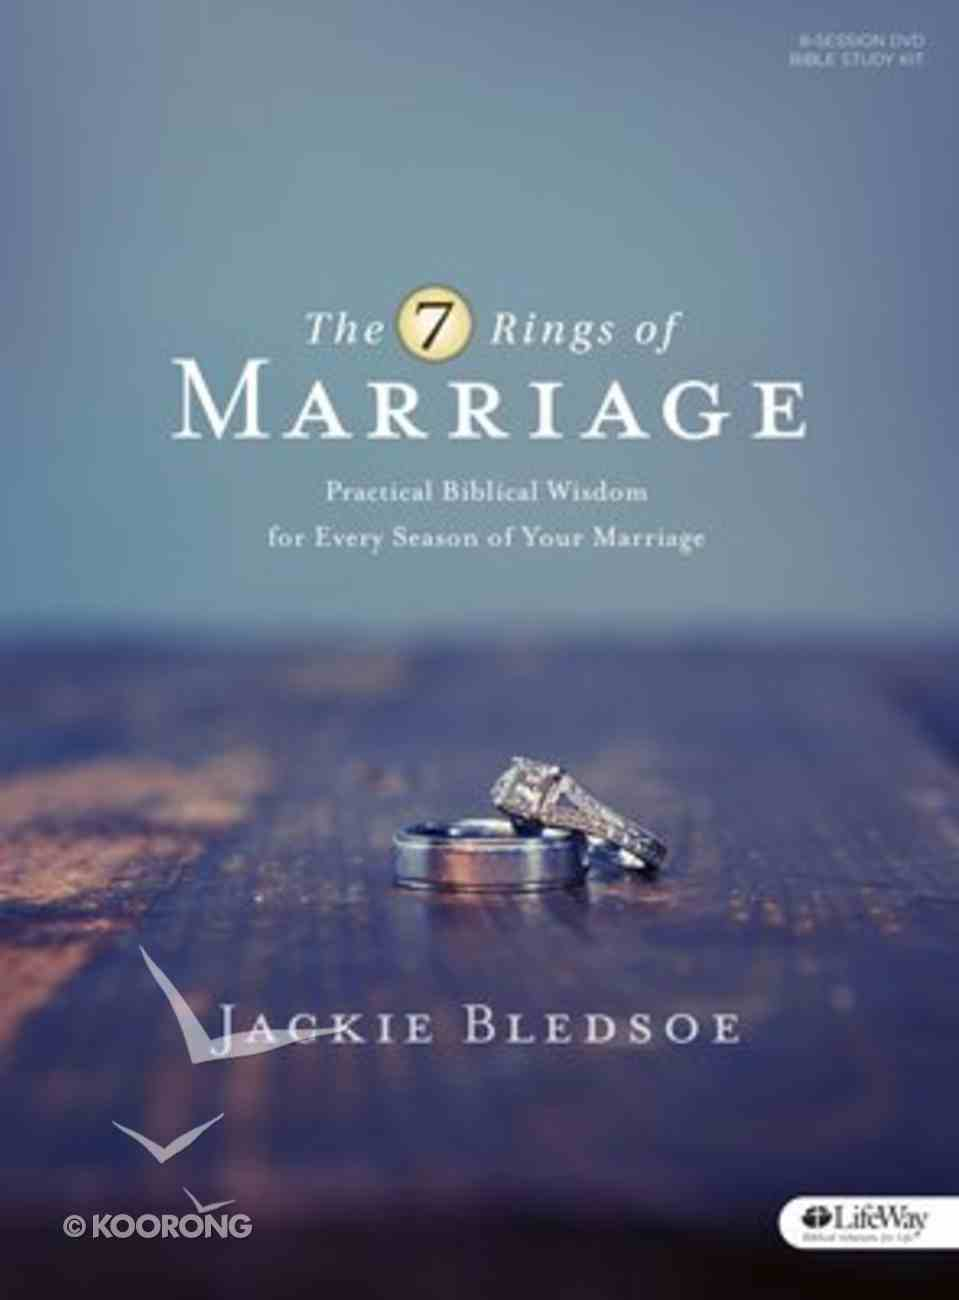 The 7 Rings of Marriage (Dvd Leader Kit: 8-session Study With 7 Weeks Of Homework And Interactive Teaching Video Approximately 15 Minutes Each Week) Pack